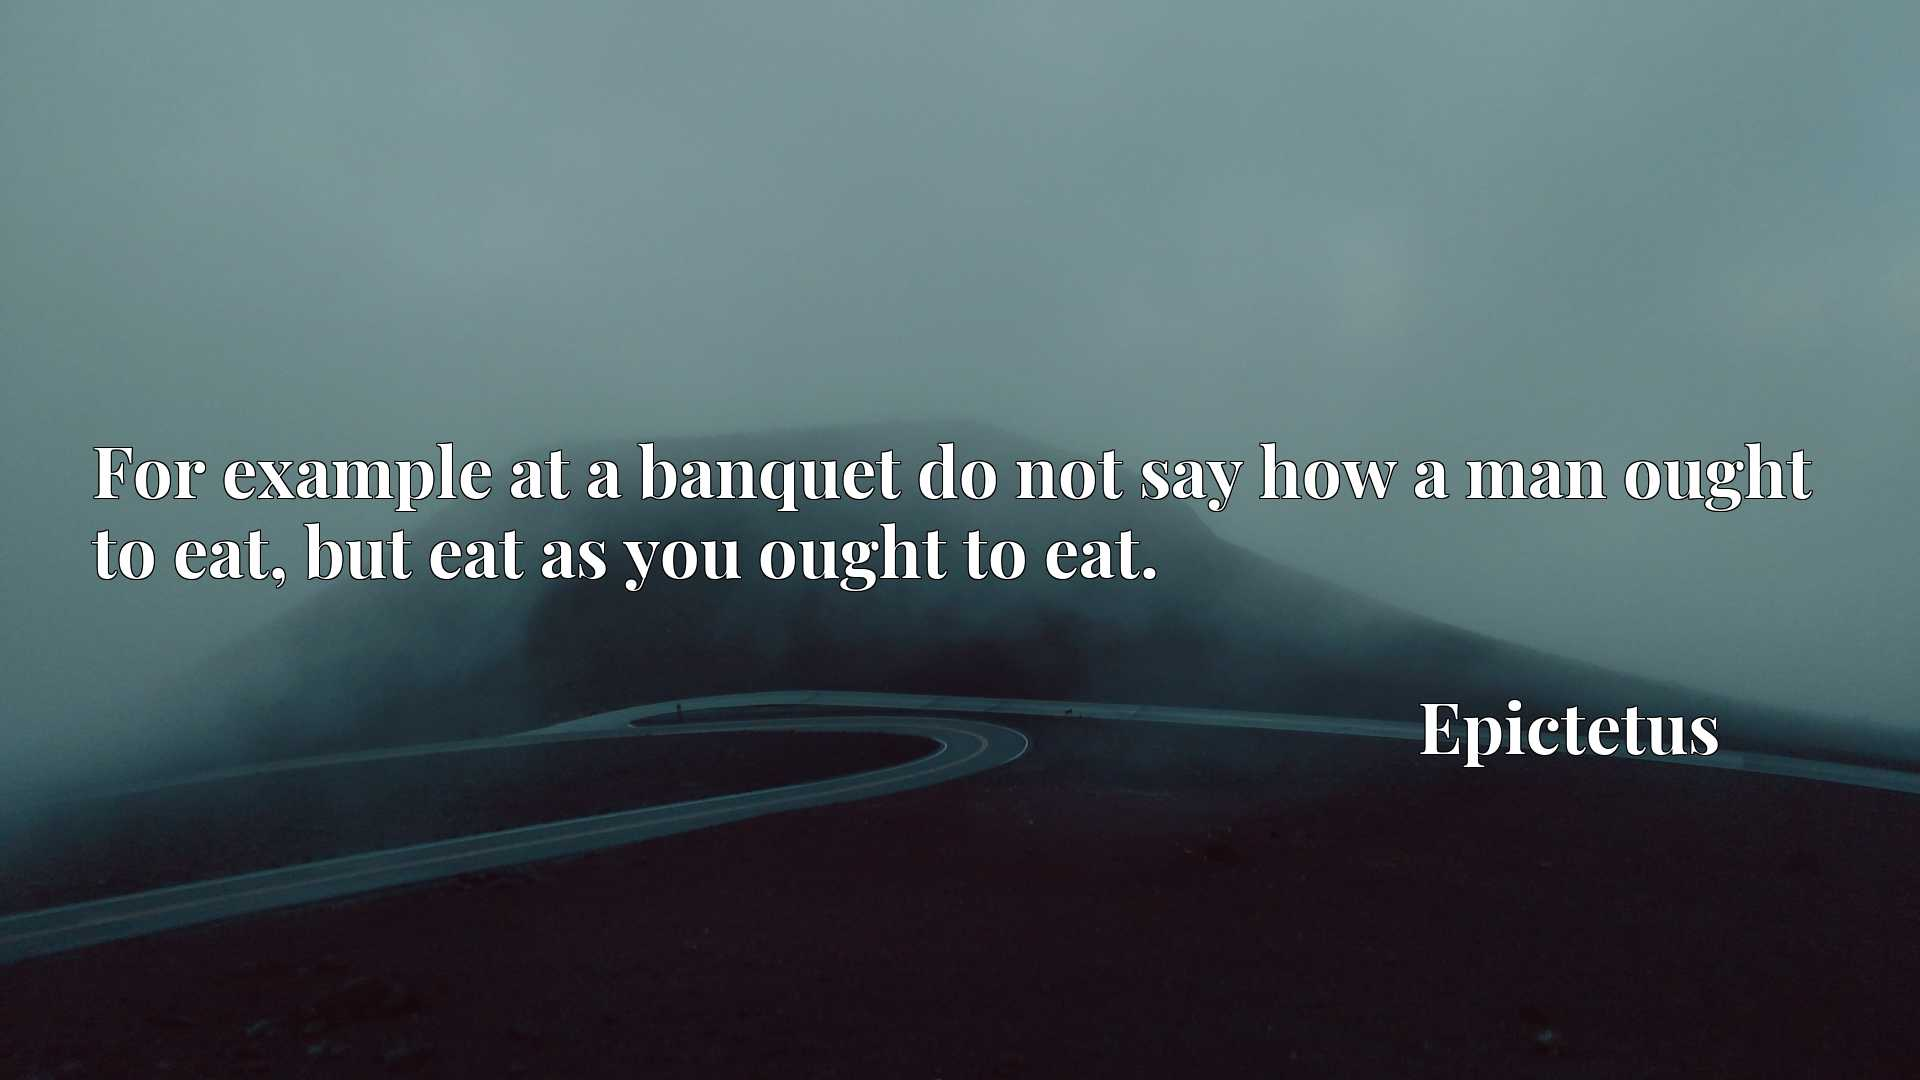 For example at a banquet do not say how a man ought to eat, but eat as you ought to eat.